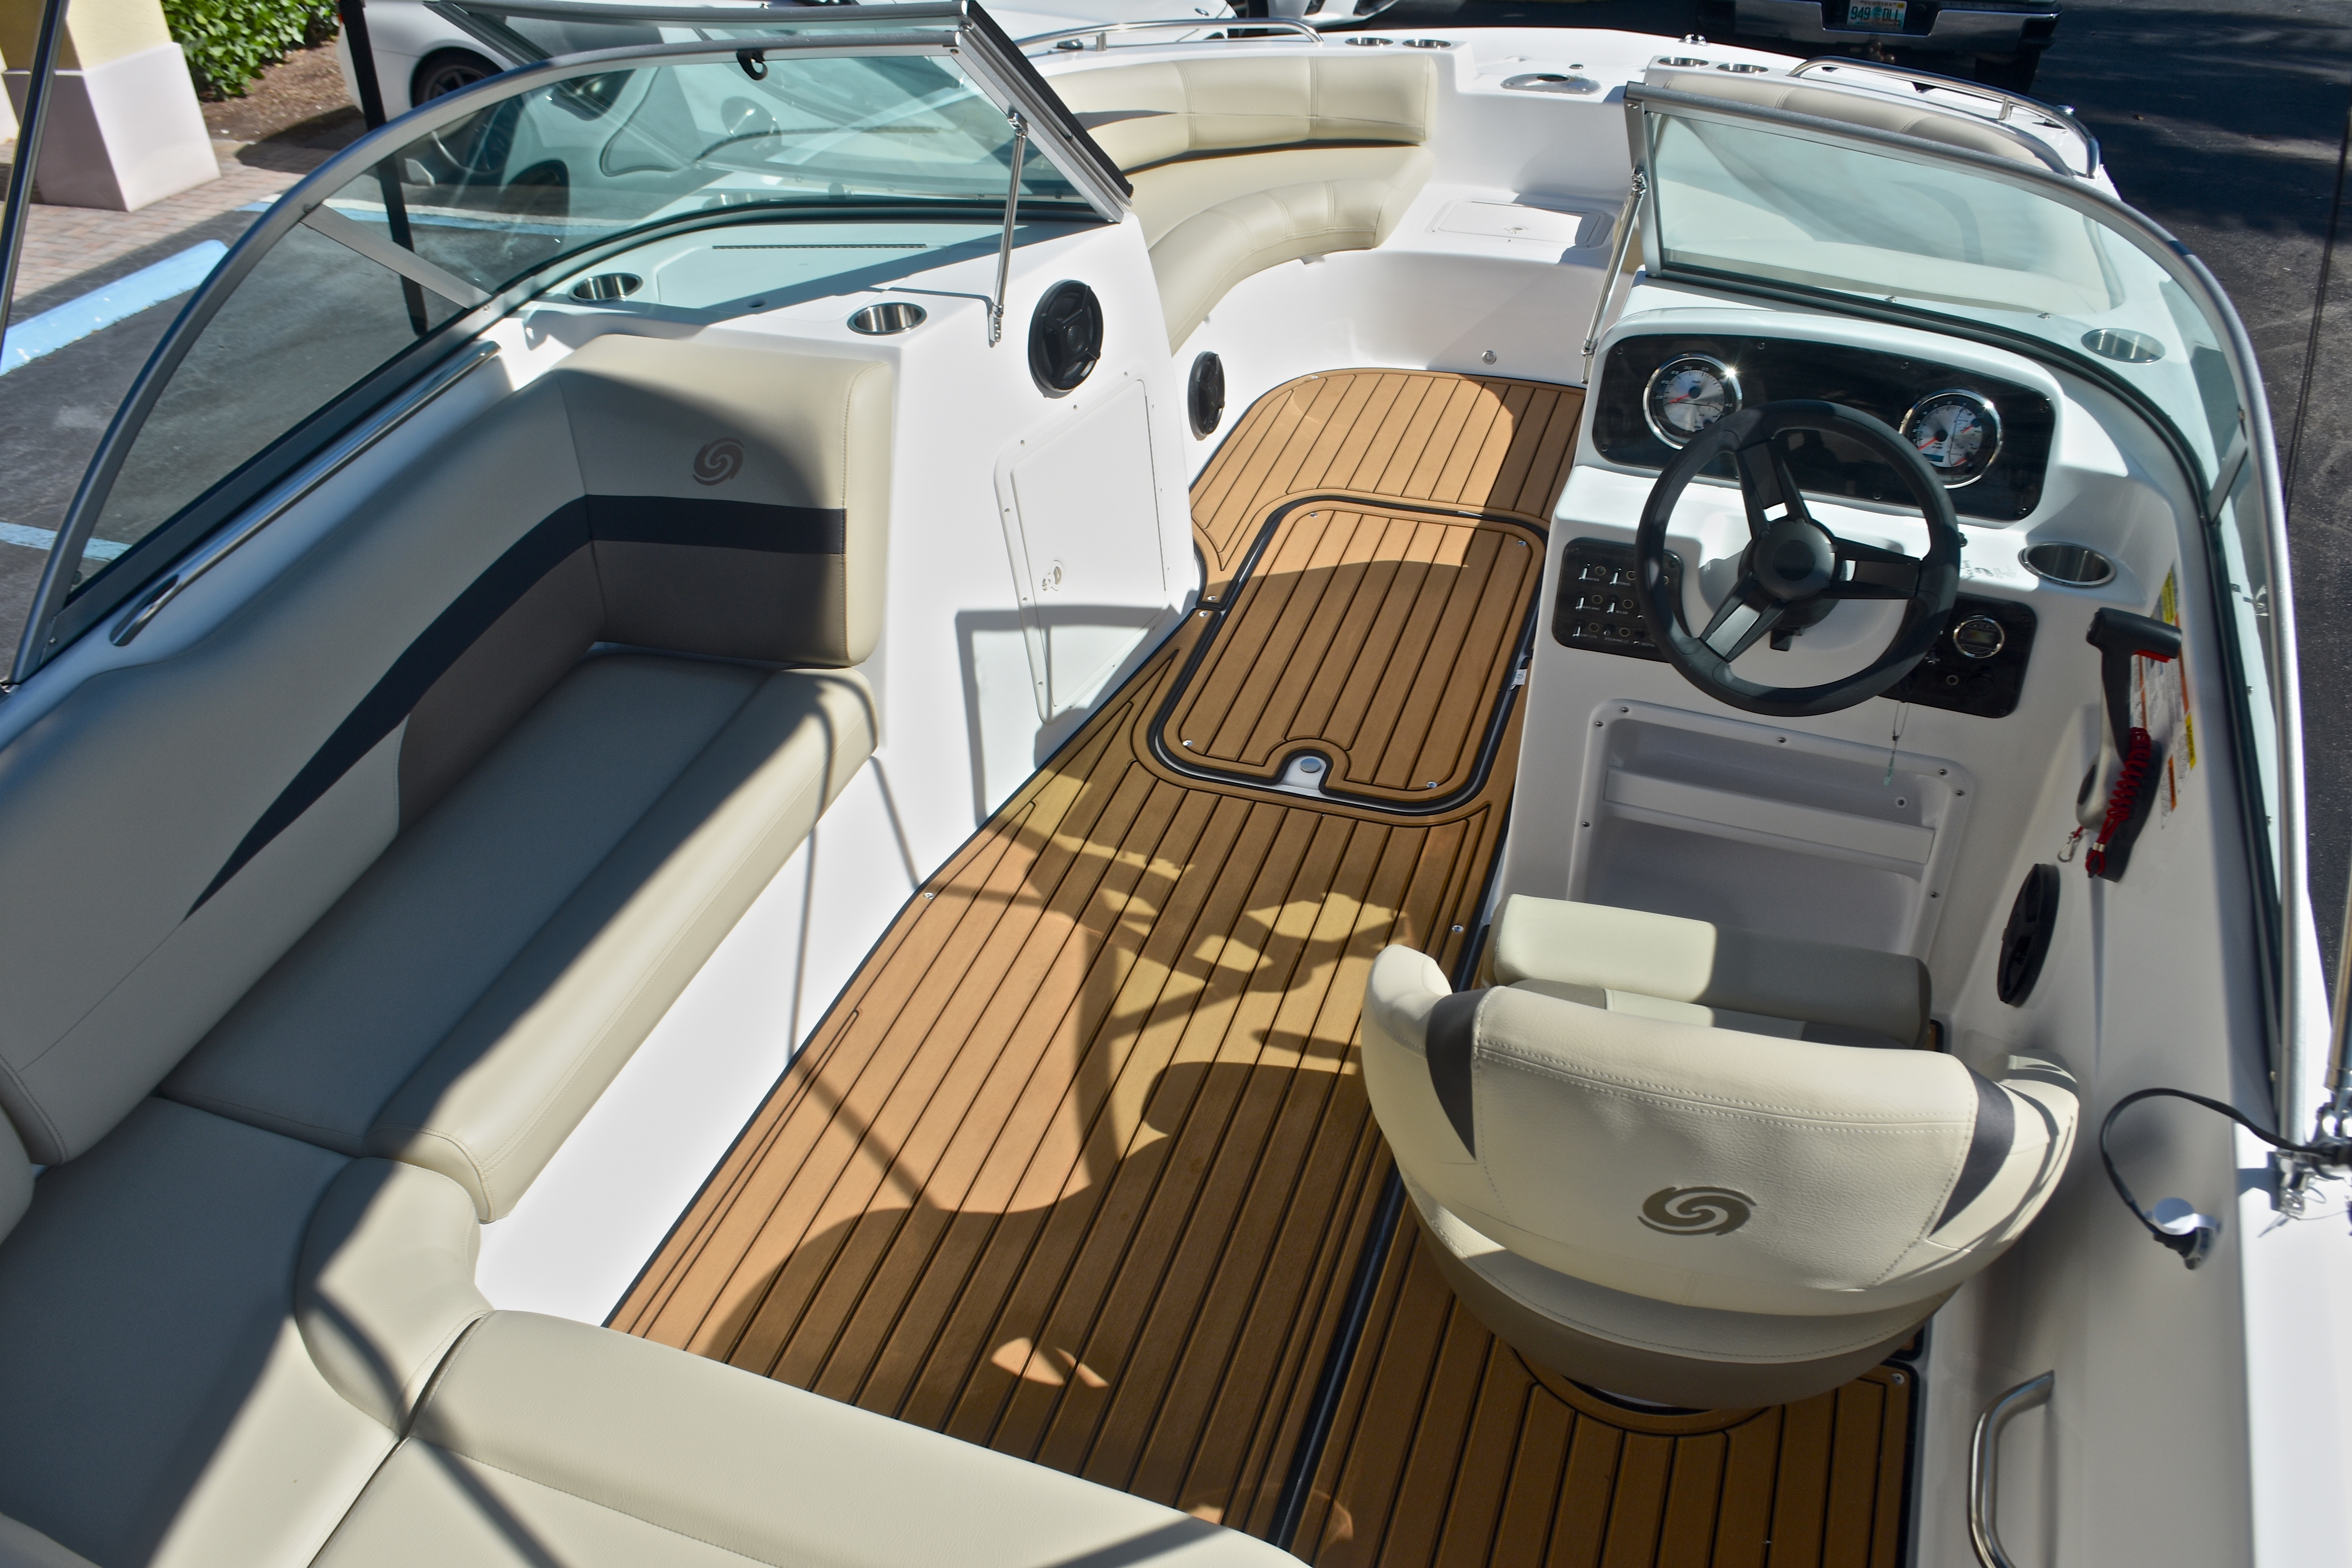 Thumbnail 12 for New 2017 Hurricane SunDeck SD 187 OB boat for sale in West Palm Beach, FL